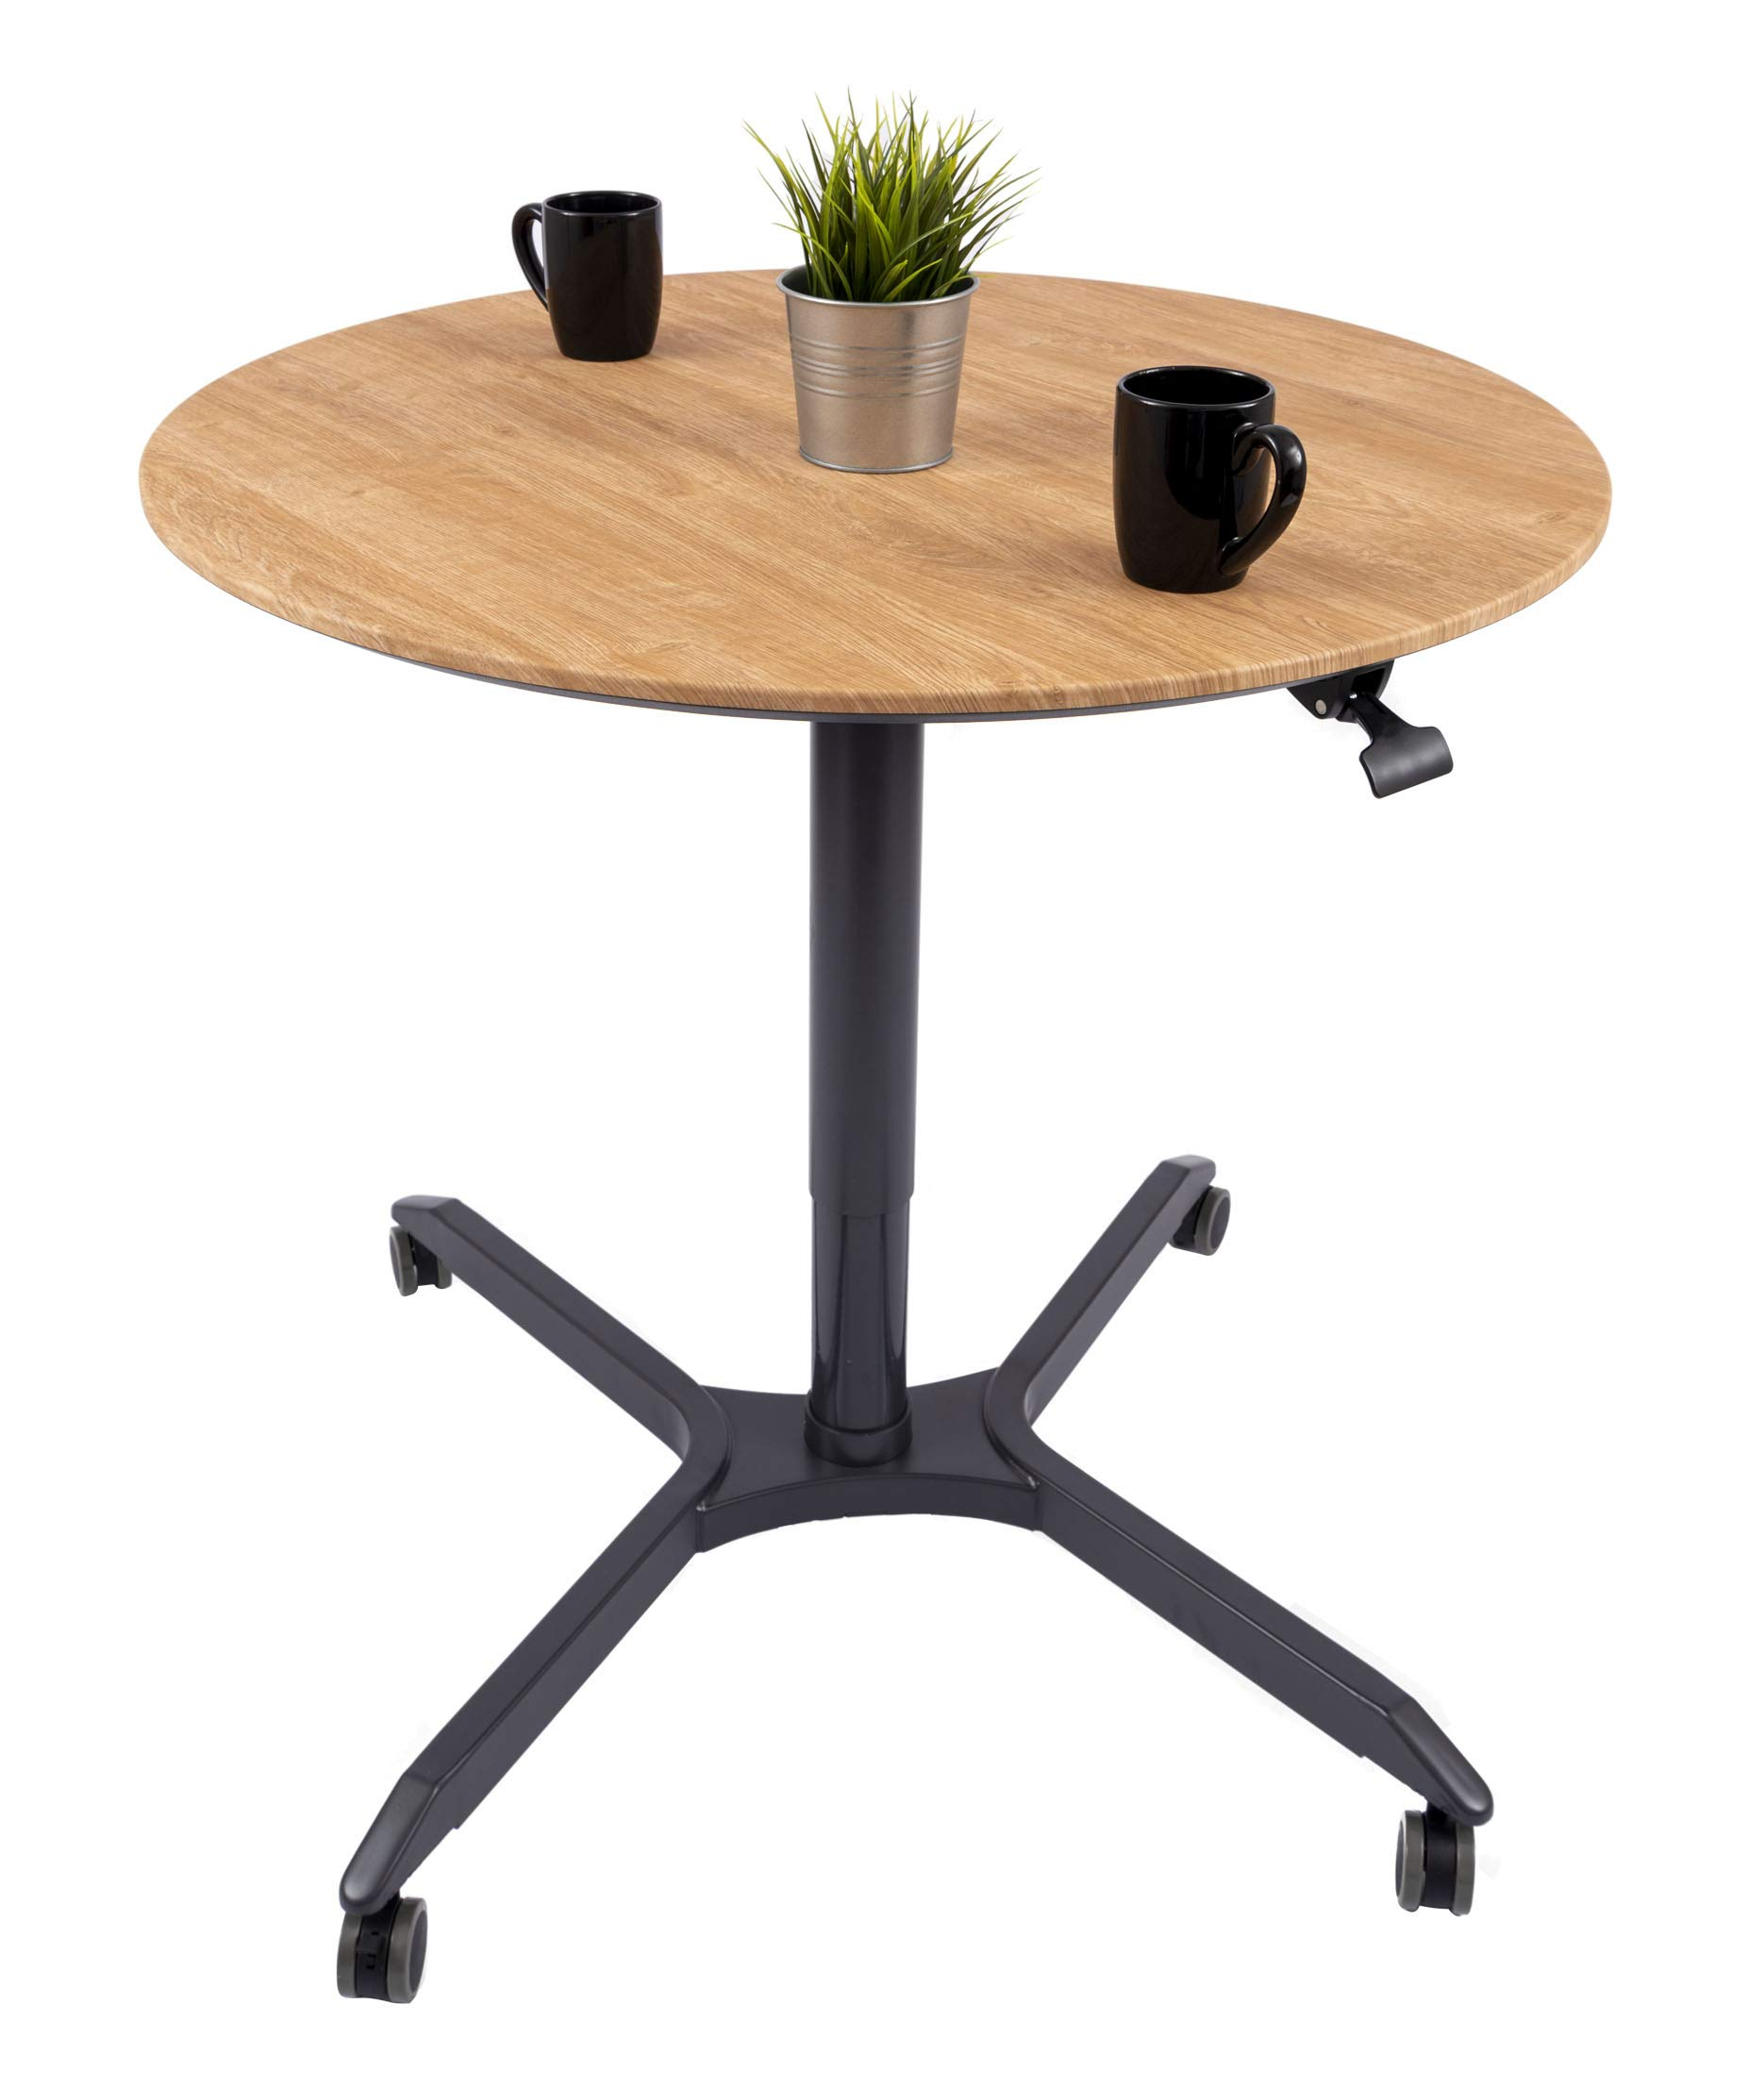 Pneumatic Adjustable-Height Cafe Table | Breakroom Table -(35'', Charcoal Frame/White Oak Top)